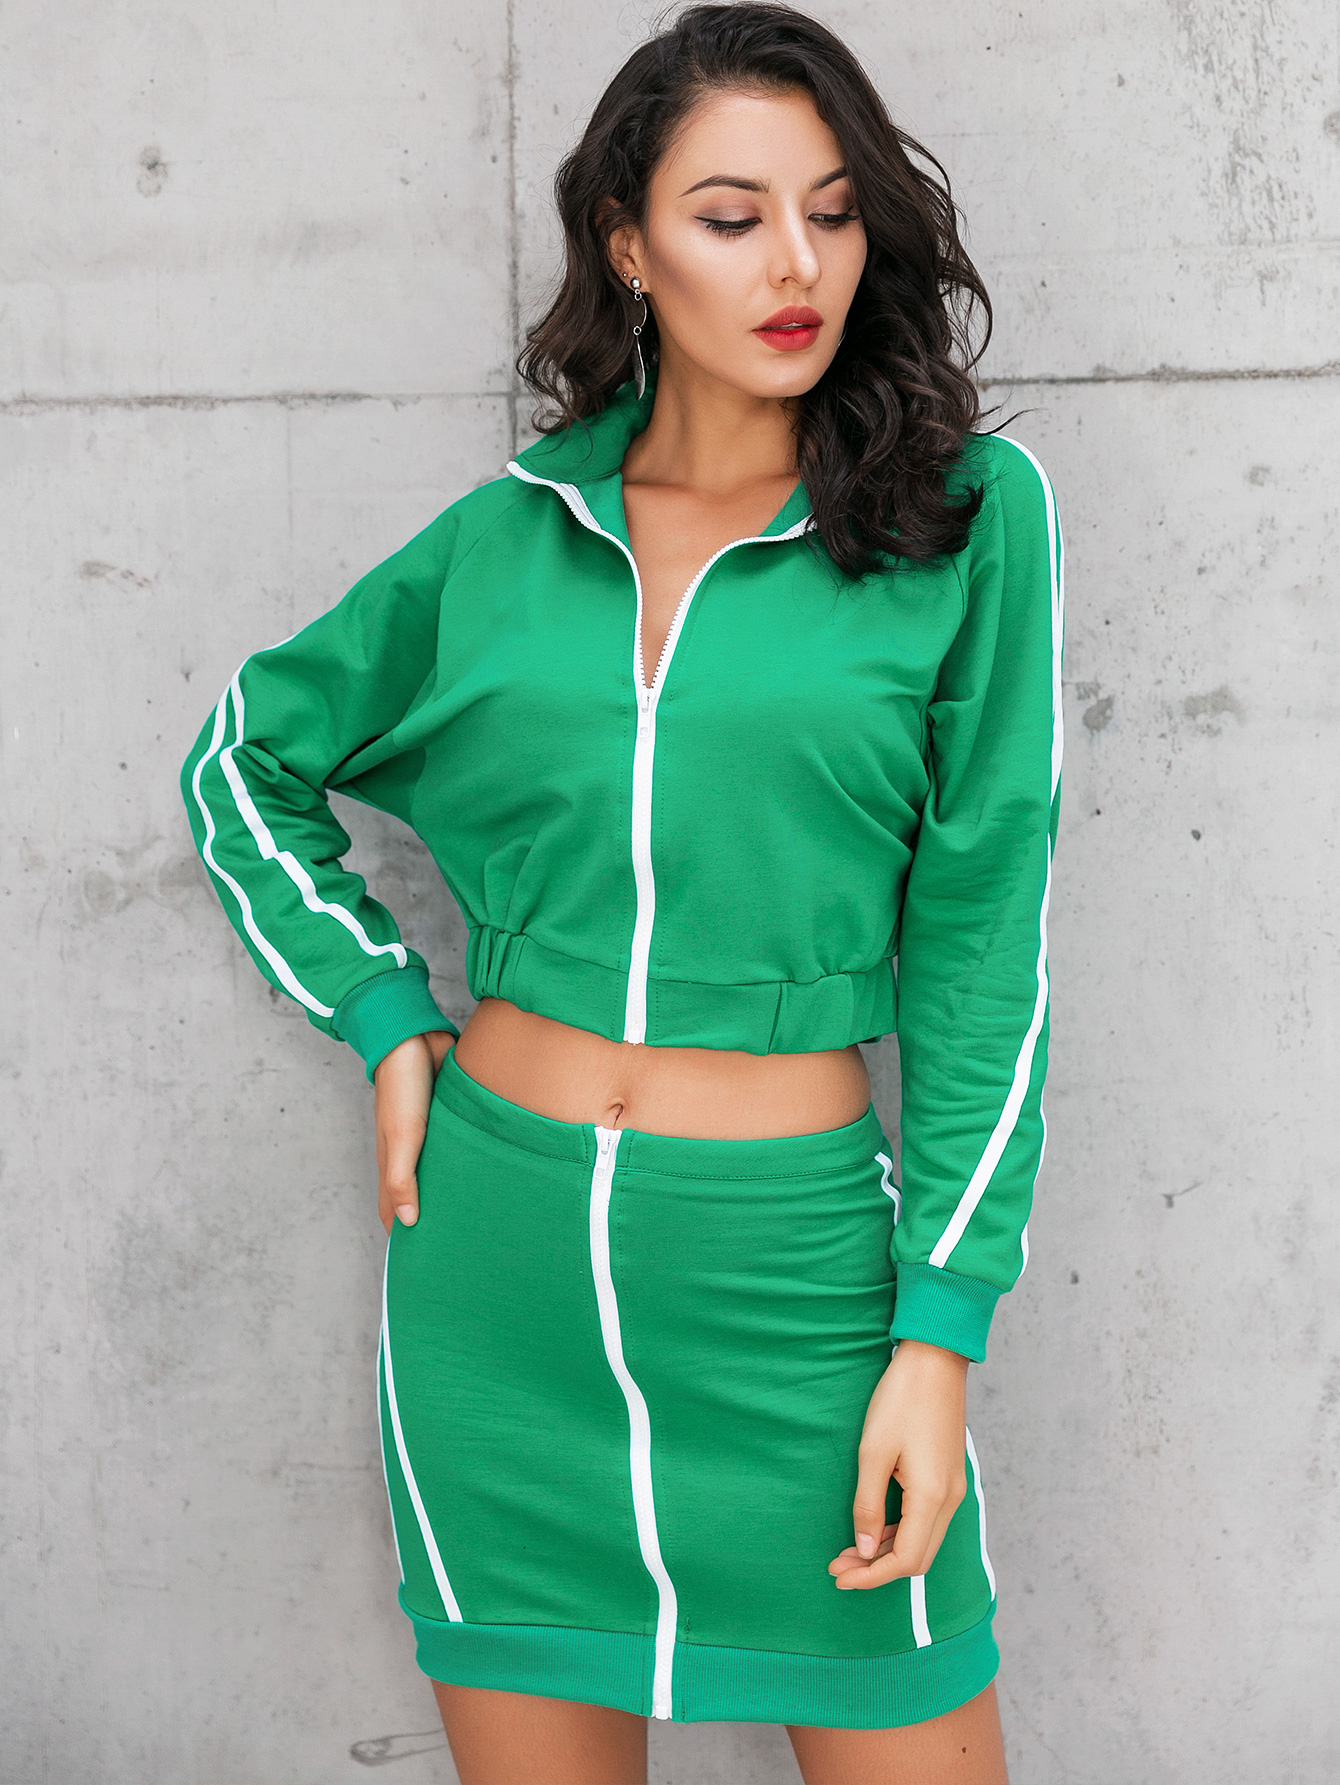 Bare Navel Simple Sports Suit Wholesale Fashion Women's Clothing NHDE195899